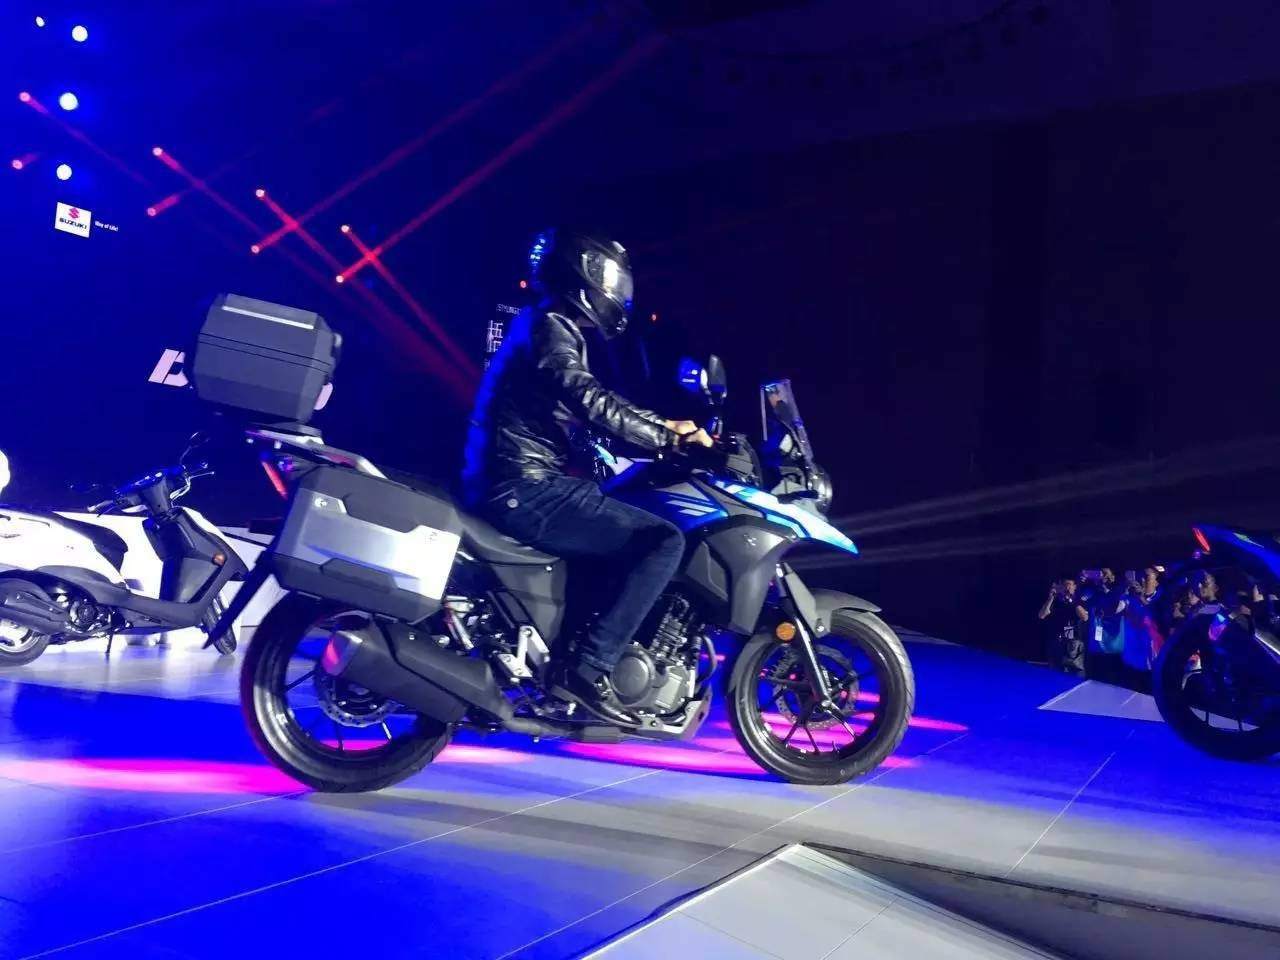 suzuki dl250 (v-strom 250) concept unveiled : details, images and